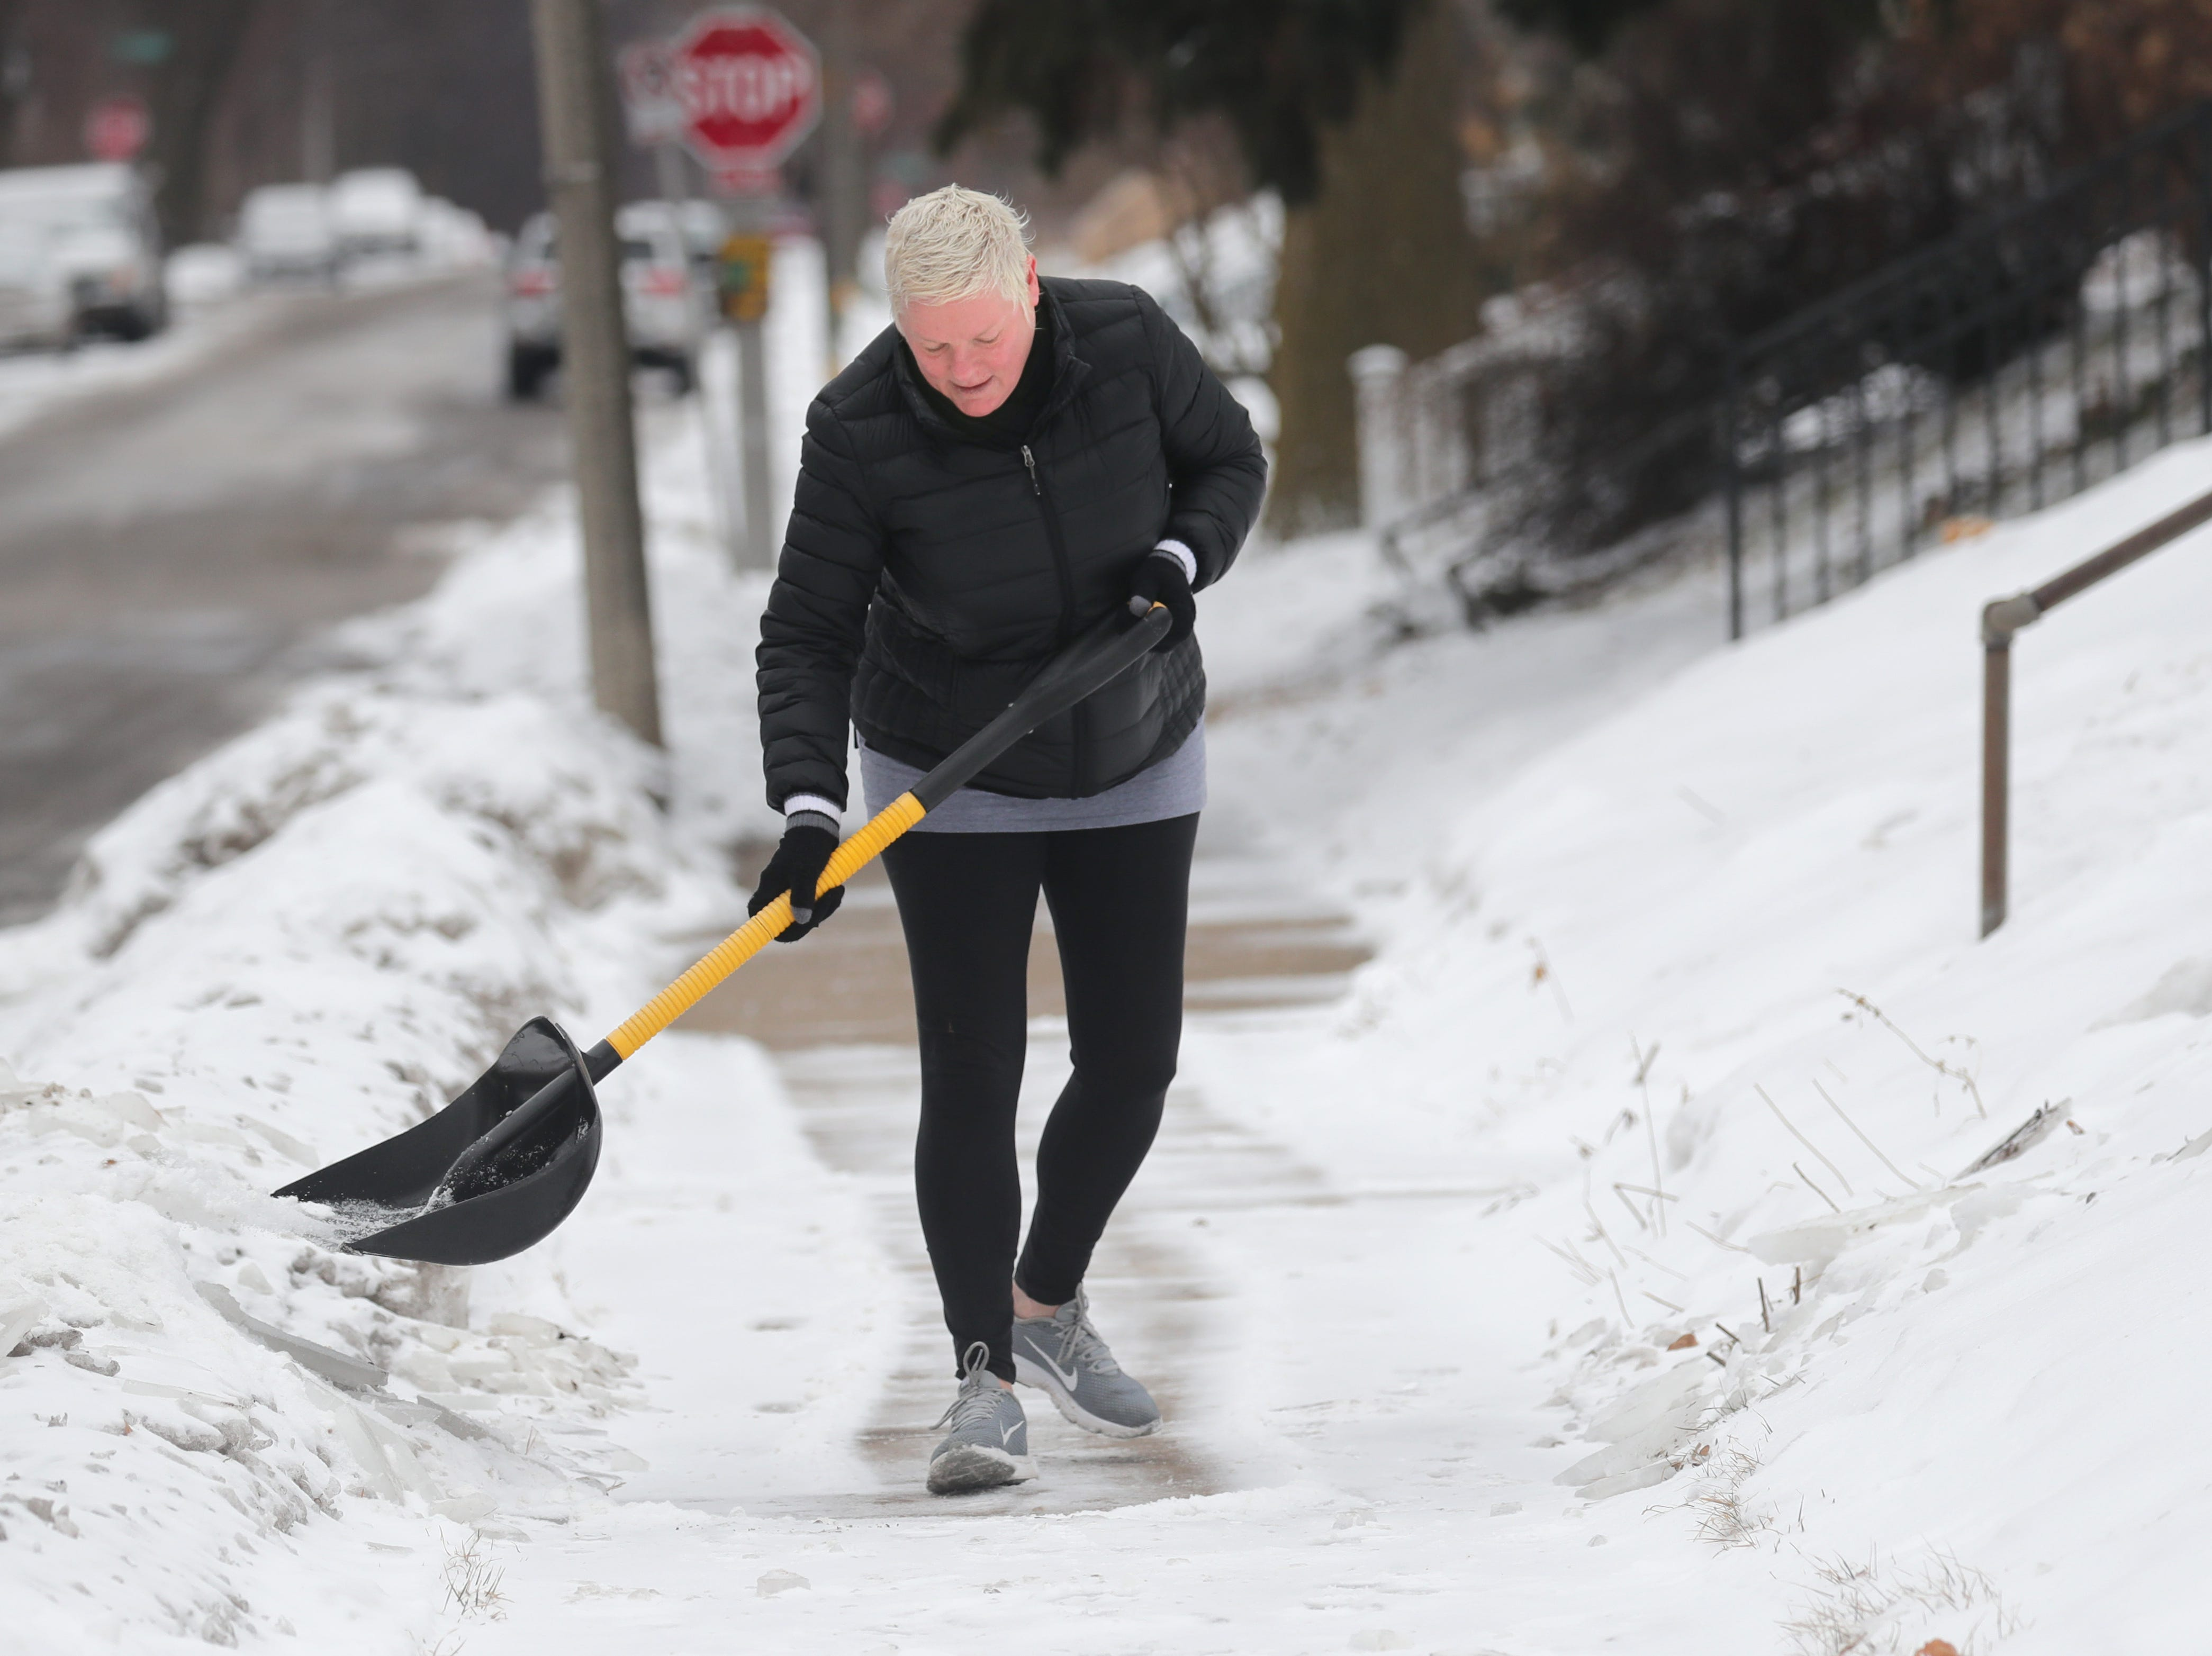 Karen Nastulski shovels a fresh coat of snow in front of her home on South Logan Avenue in Bay View on Monday, Feb. 11, 2019. The National Weather Service has issued a winter storm warning for central, northern and northeastern Wisconsin from 9 p.m. Monday until 12 a.m. Wednesday. Photo by Mike De Sisti / Milwaukee Journal Sentinel